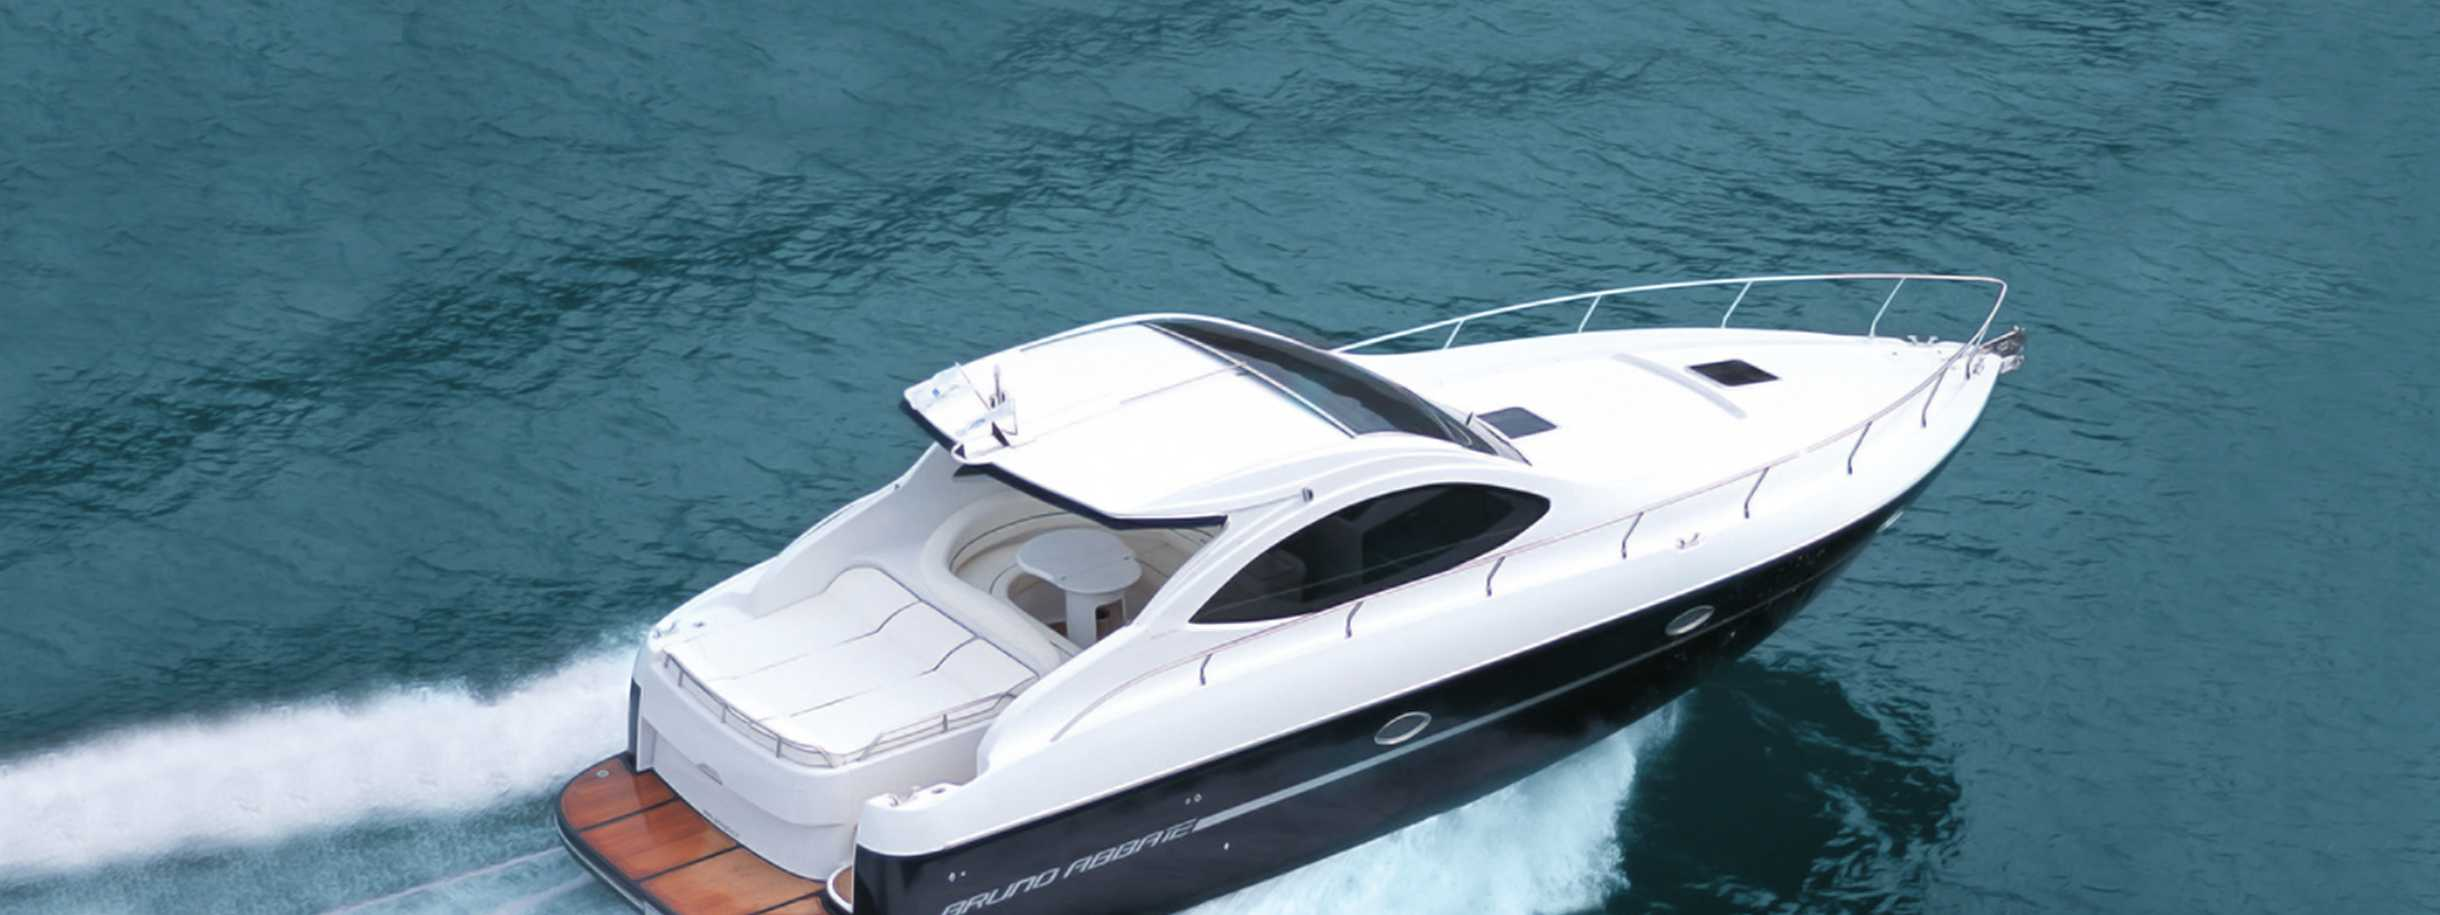 Boat Rentals & Yacht Charters | Scubalife